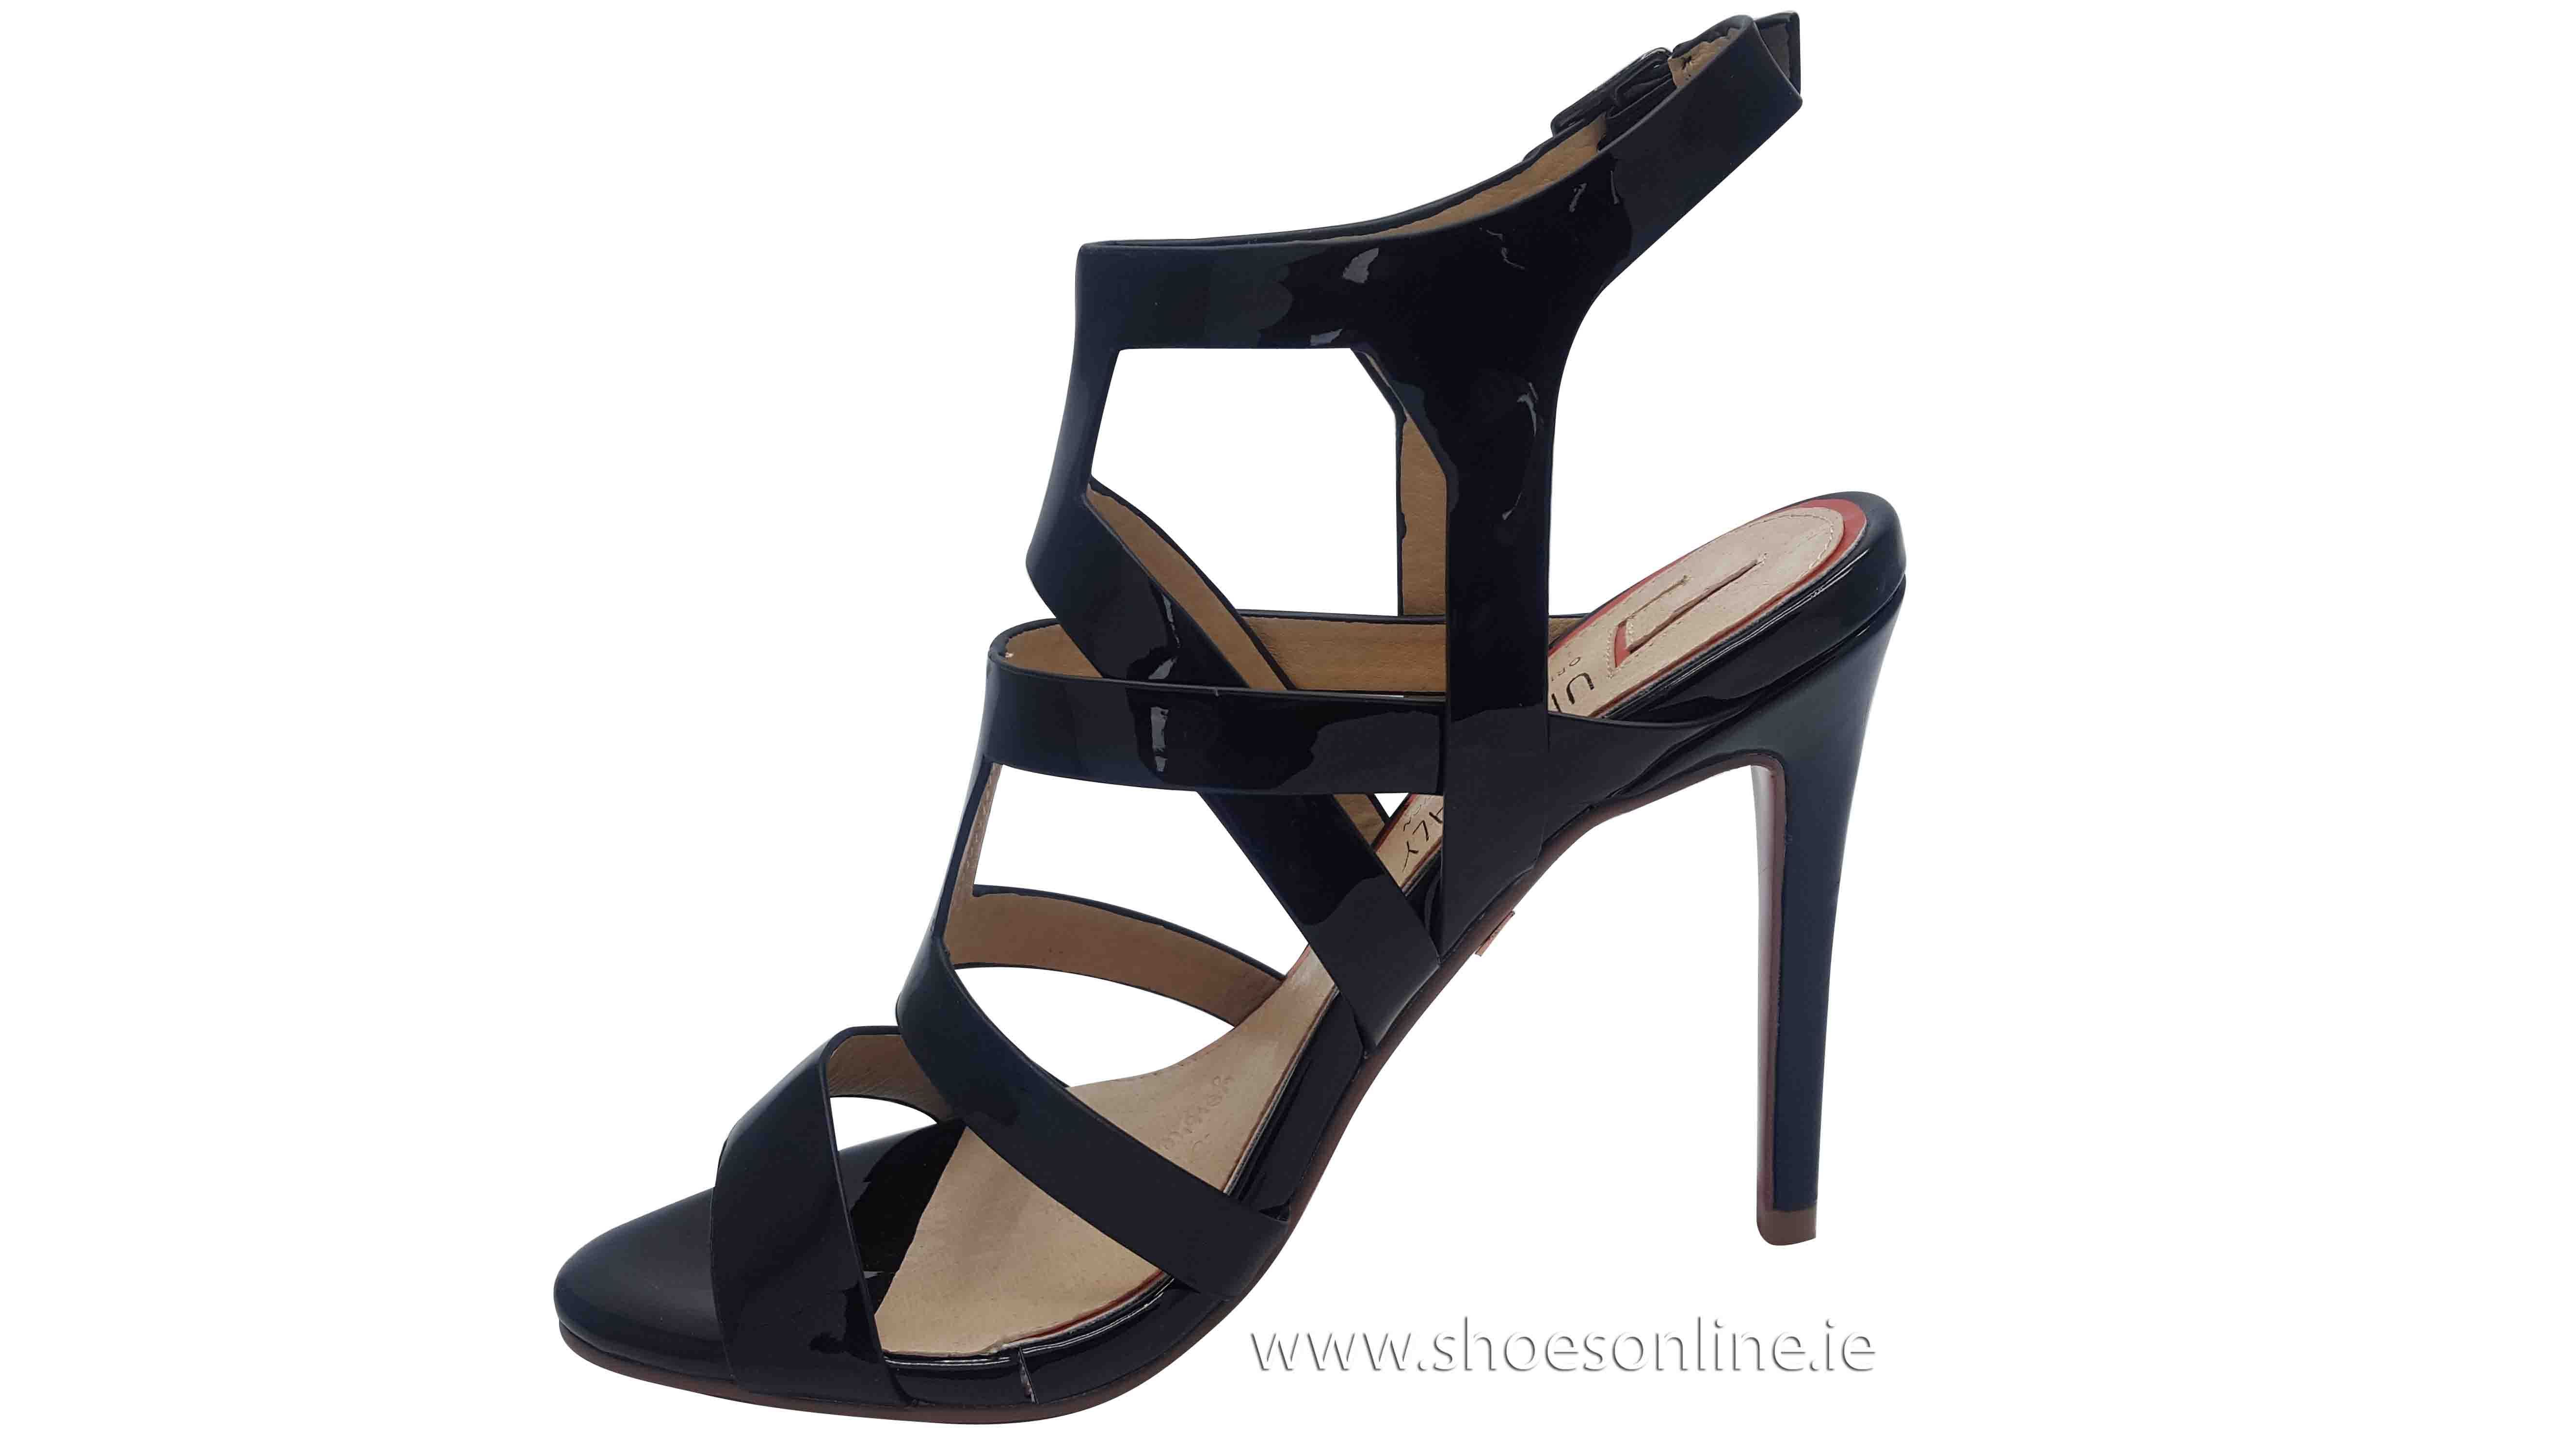 8b32d183acd7 Una Healy Shoe Chasing Lights at just €50.00  onlineshopping  fashion   products